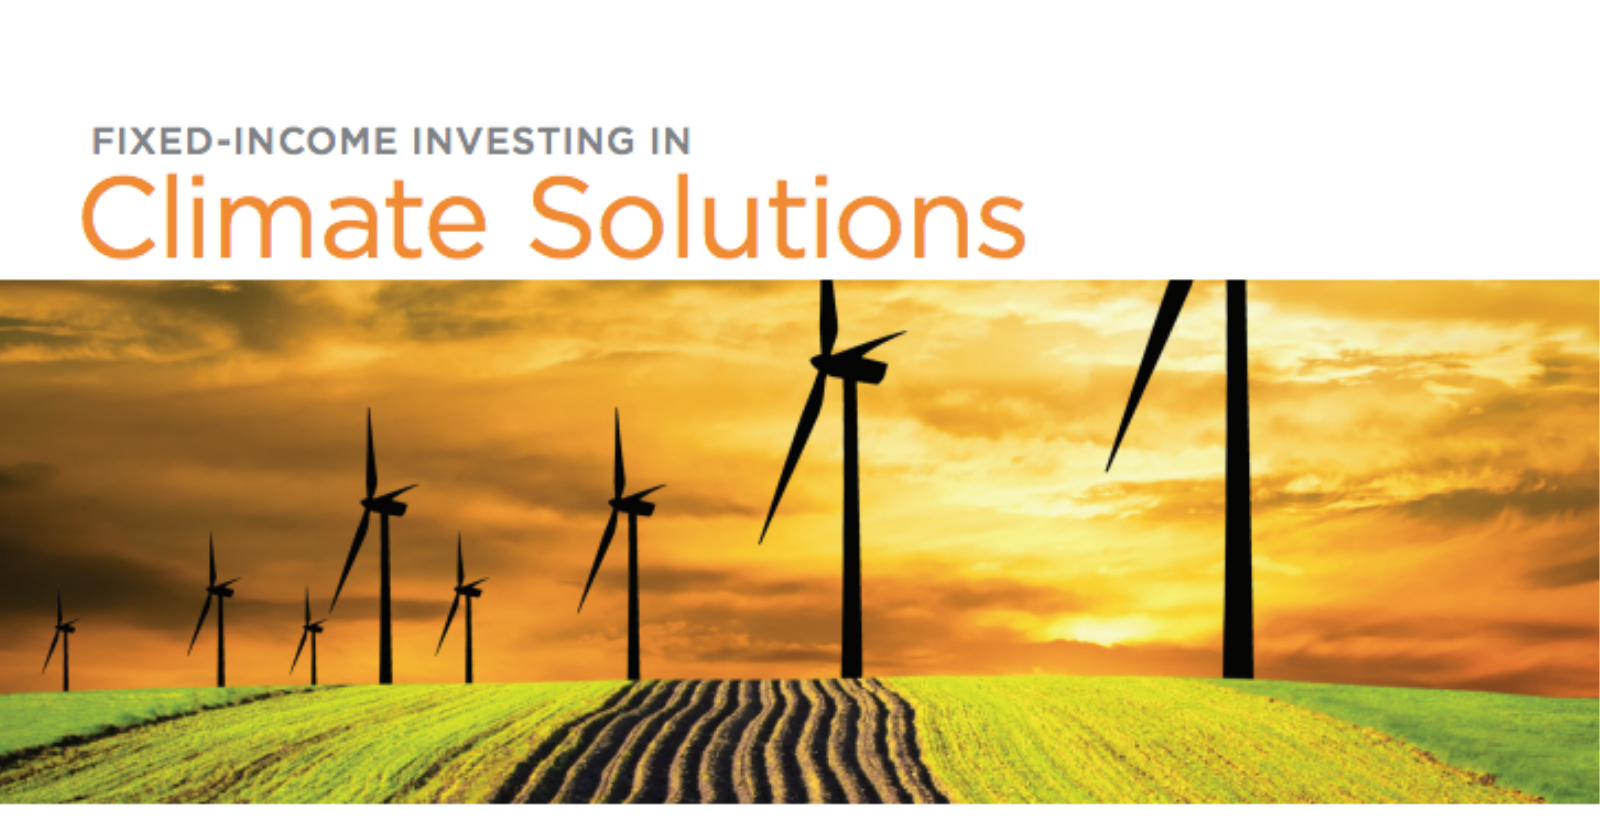 Fixed Income Investing in Climate Solutions